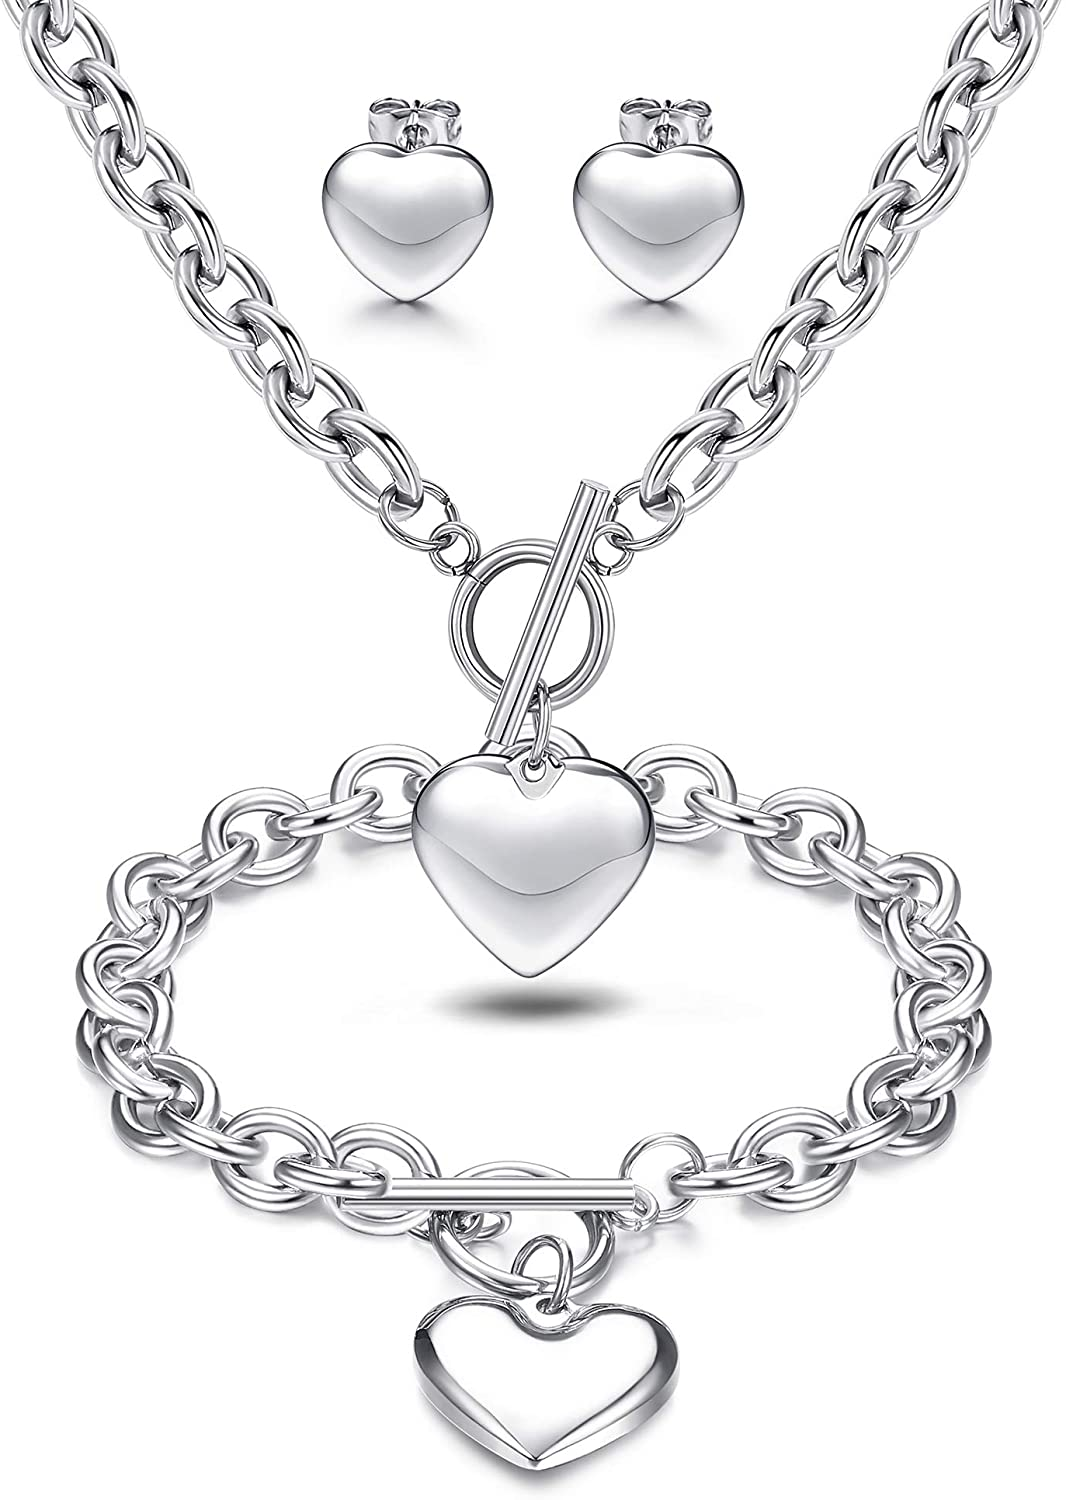 LOYALLOOK 3Sets Heart Pendant Necklace Toggle Chain Heart Bracelet Heart Stud Earrings for Women Stainless Steel Charm Love Heart Jewelry Set for Mother's Day